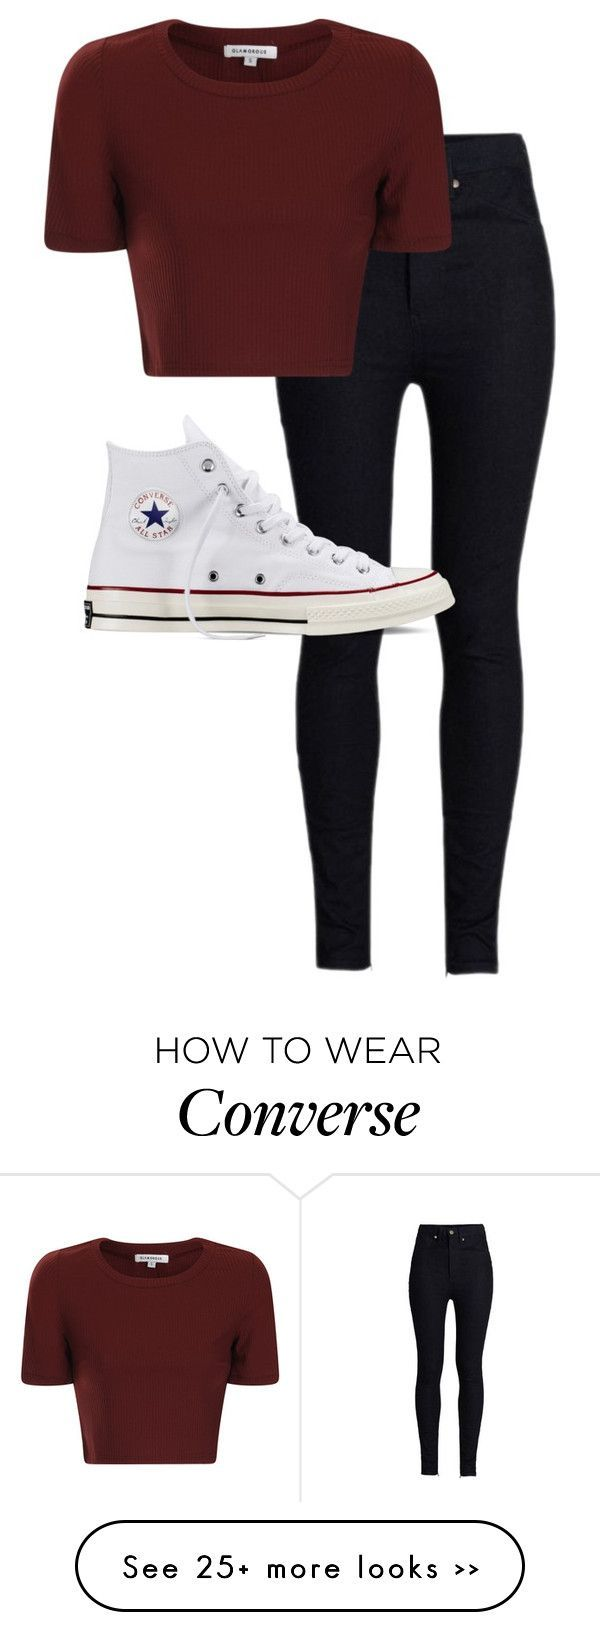 """Untitled #235"" by kenideehaze on Polyvore featuring Rodarte, Glamorous and Converse"